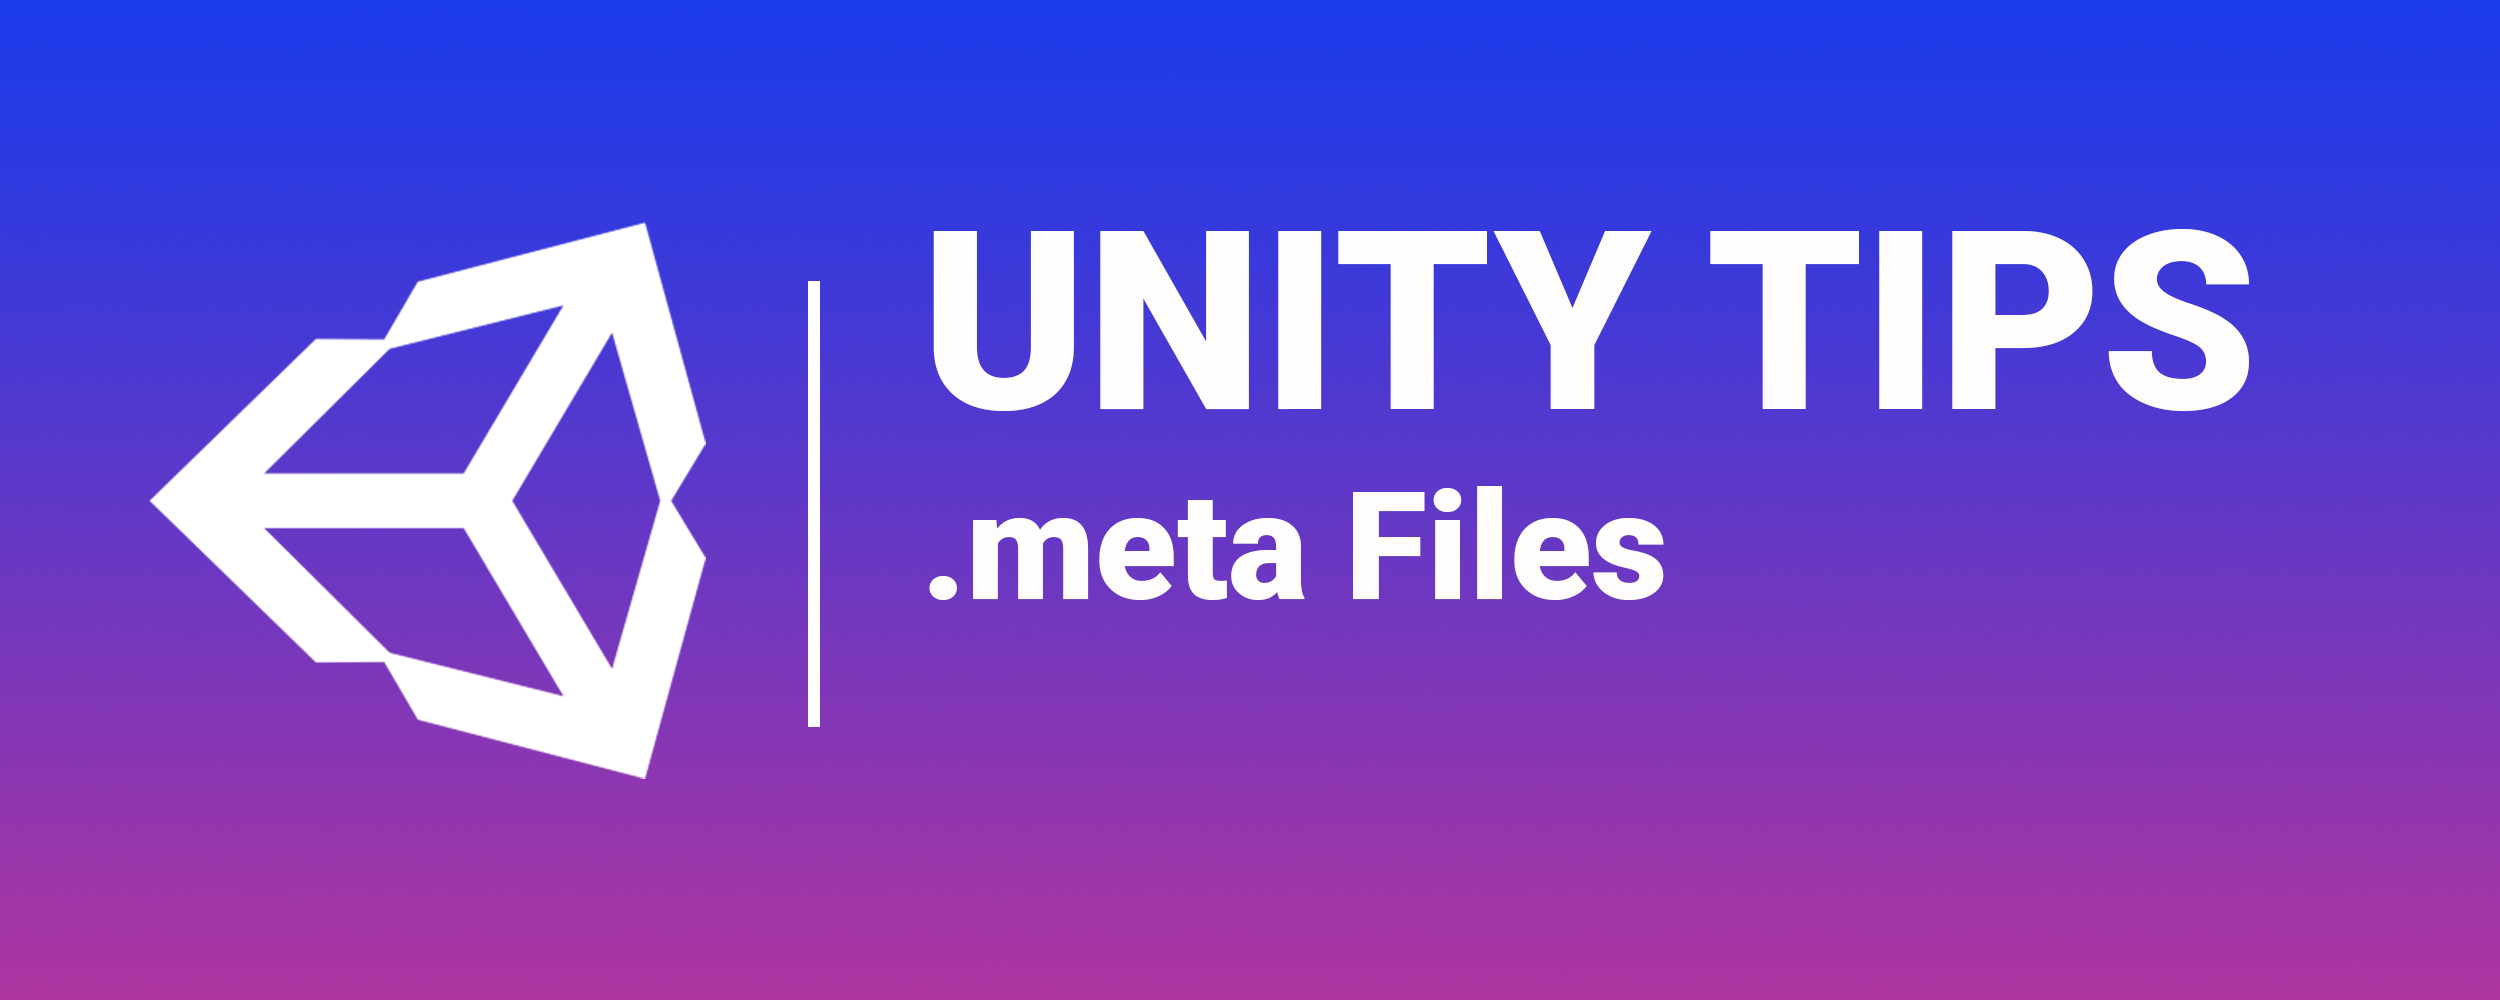 Unity Tips: .meta Files